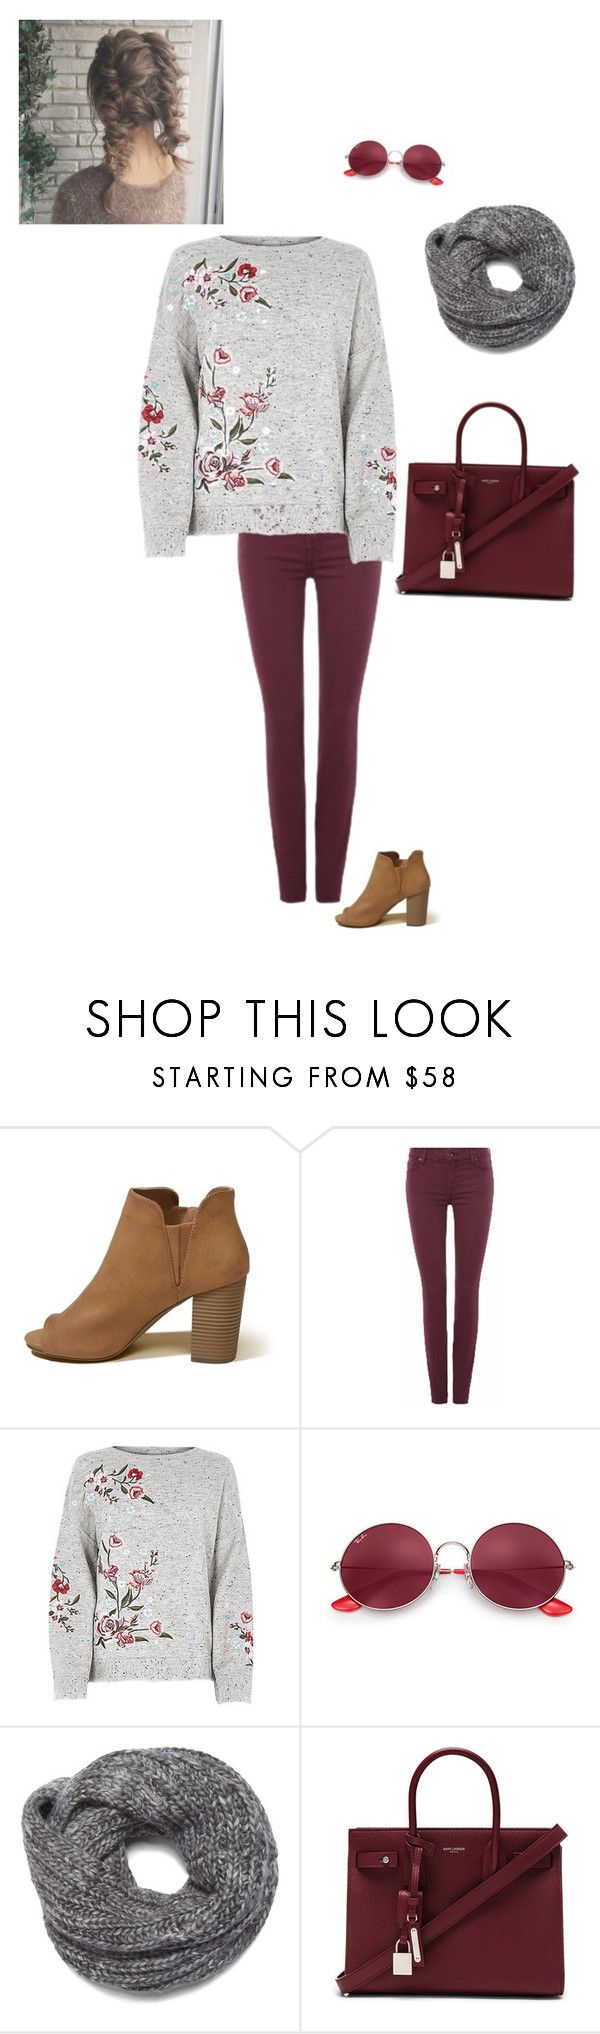 """""""Untitled #925"""" by beauty-lays-within ❤ liked on Polyvore featuring Hollister Co., 7 For All Mankind, Ray-Ban, Nine West, Yves Saint Laurent, casualoutfit and 2017"""